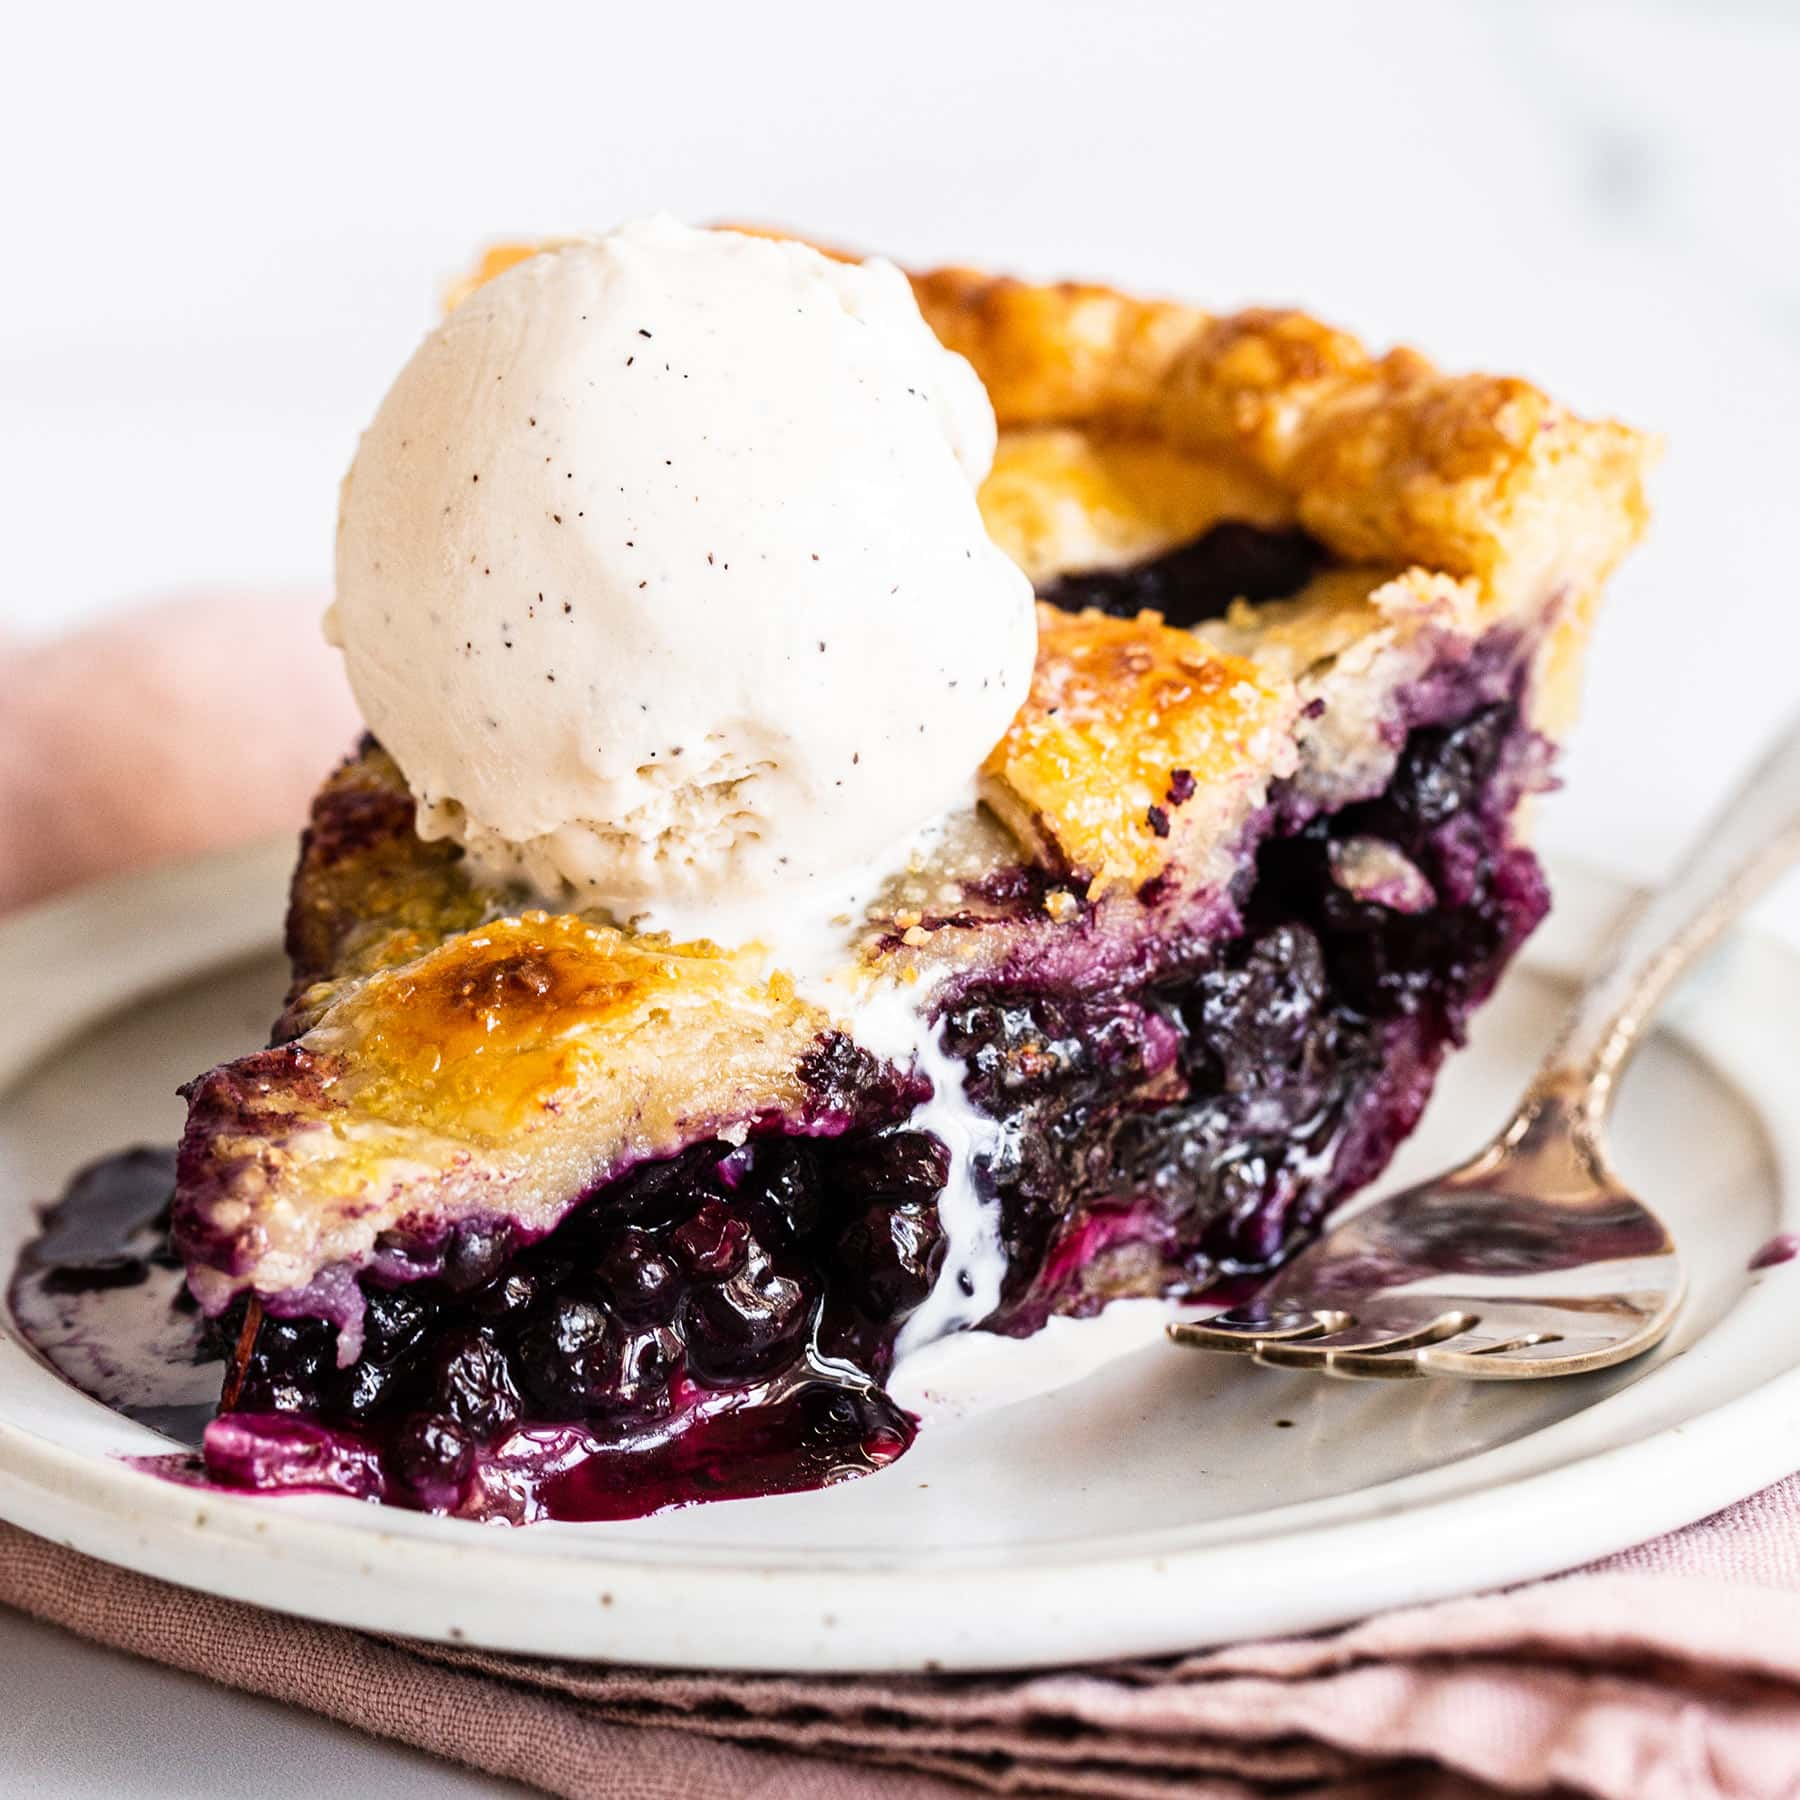 slice of homemade blueberry pie and a scoop of vanilla ice cream on top